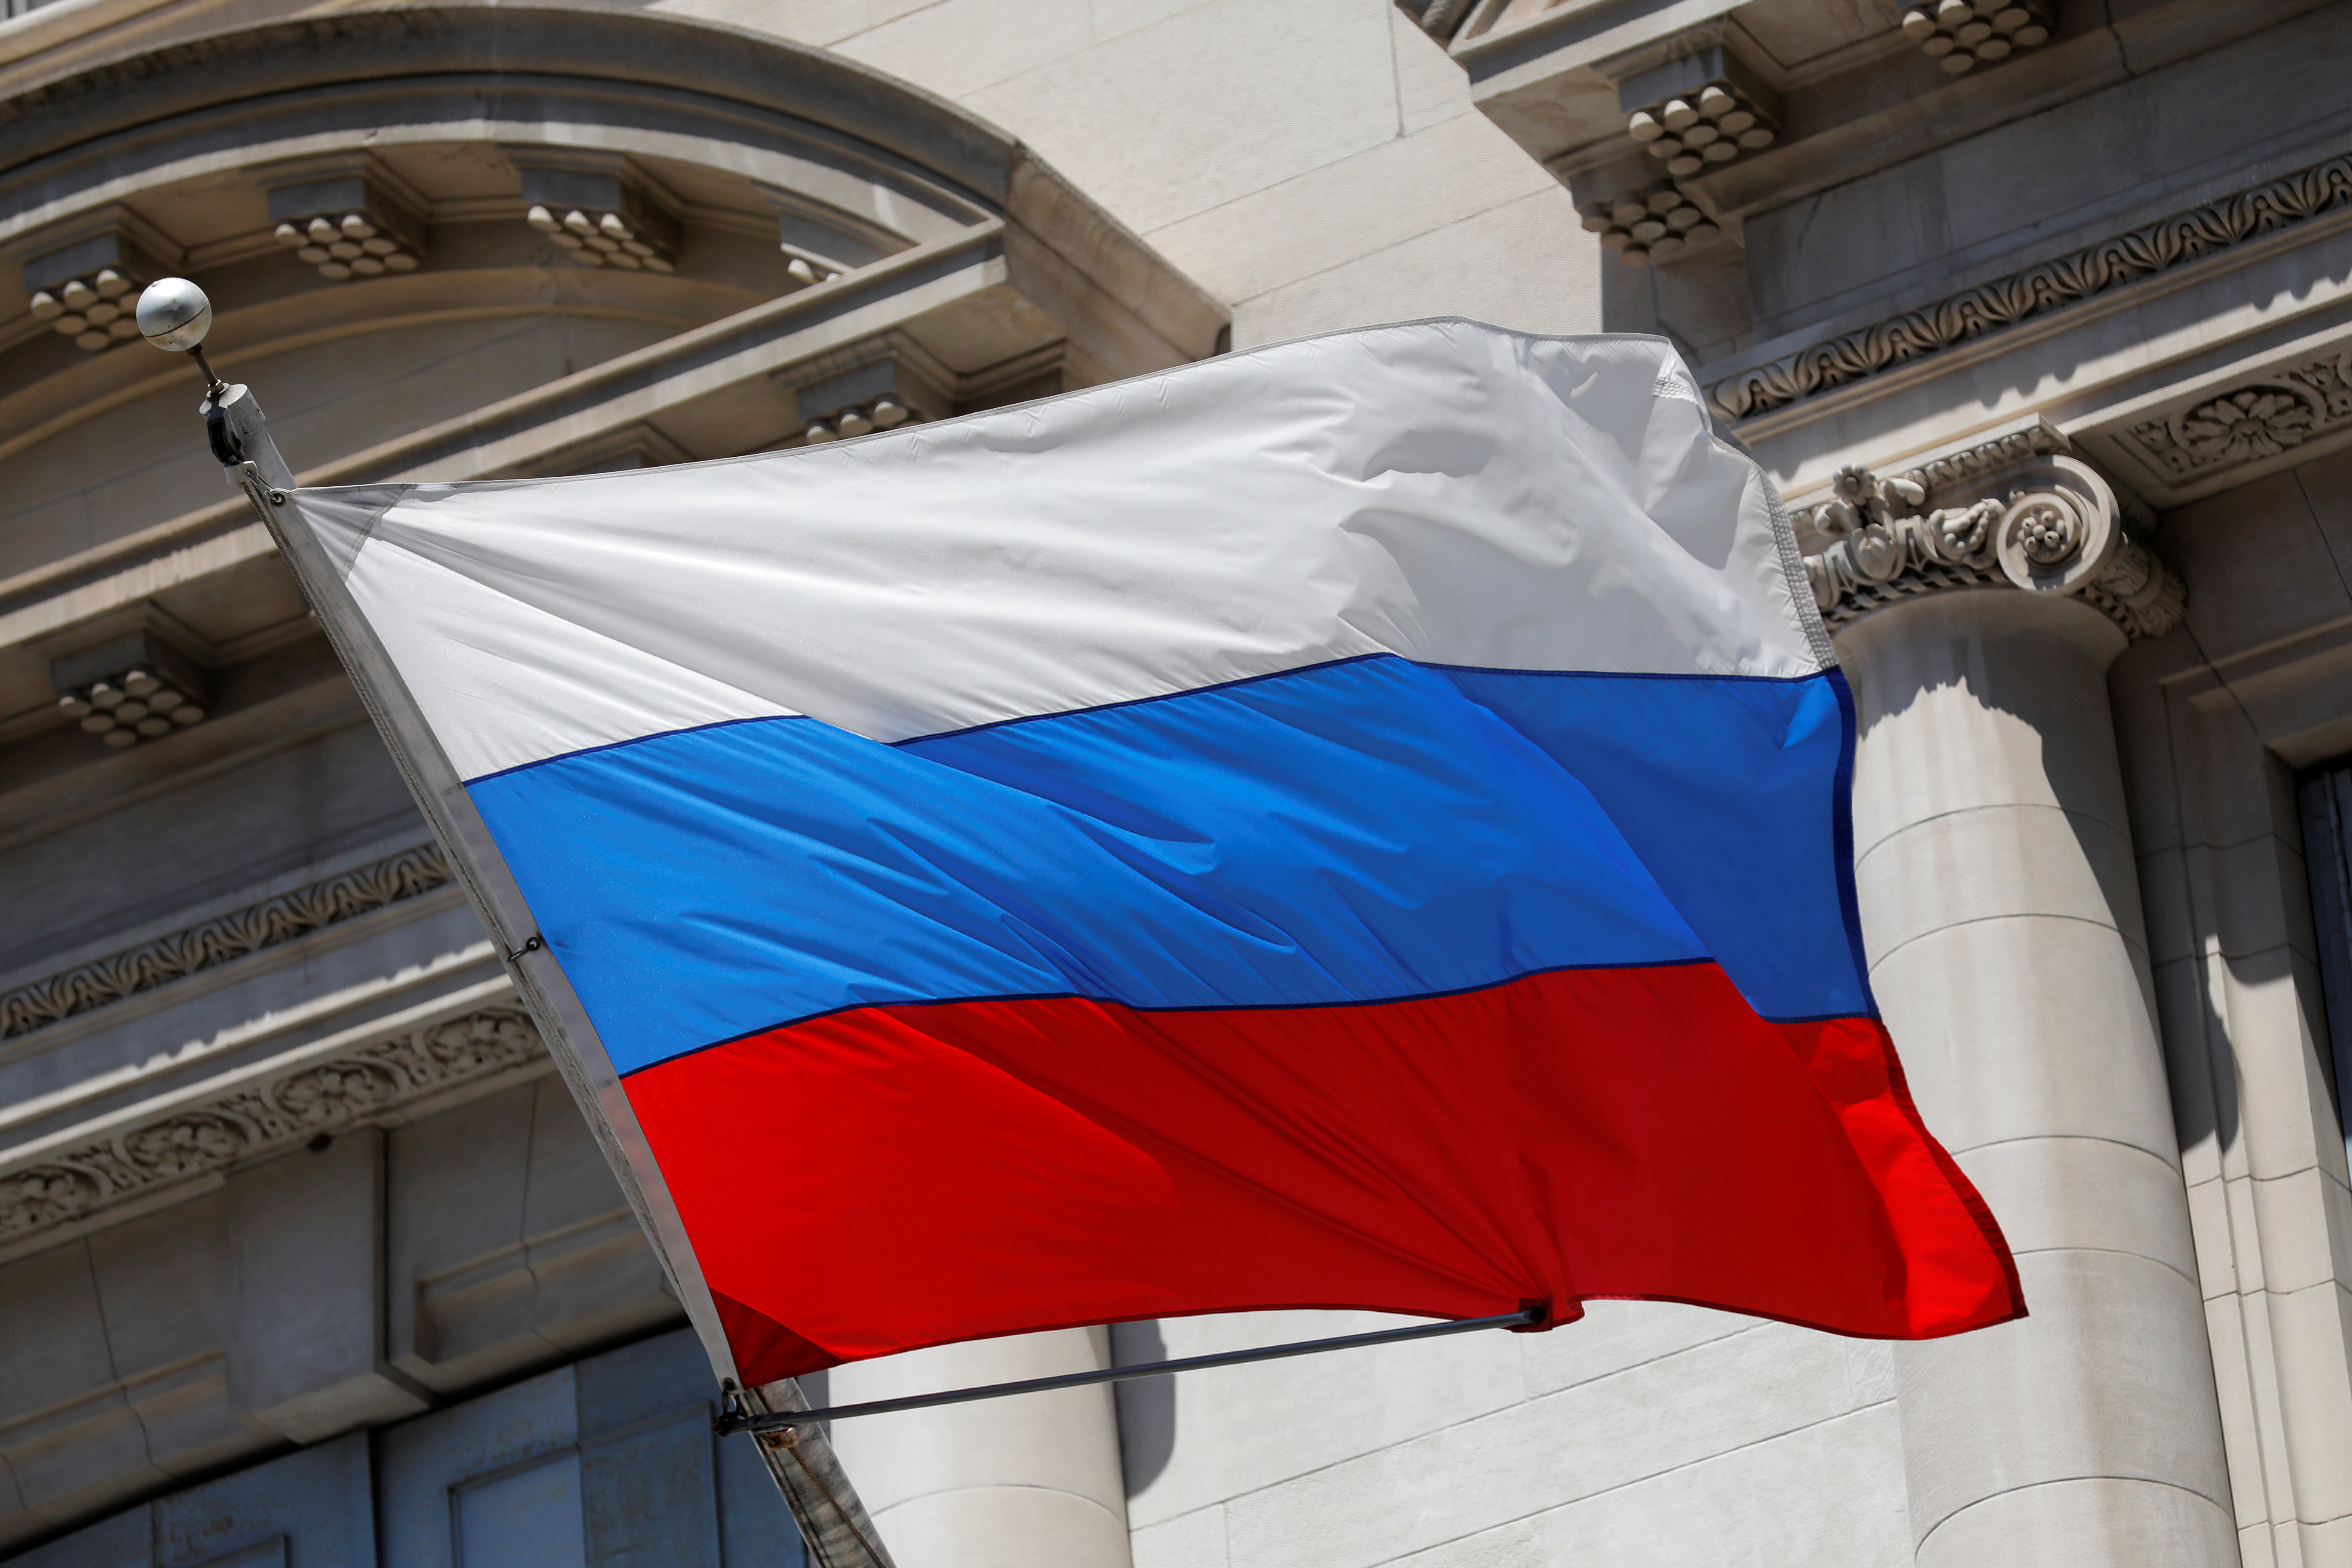 A Russian flag flies outside the Consulate General of the Russian Federation in New York after the U.S. introduced a 3-year restriction on the stay of Russian Diplomats and gave a list of 24 employees of the diplomatic mission who will need to leave the country by September 3, 2021 in Manhattan, New York City, U.S., August 2, 2021. REUTERS/Andrew Kelly